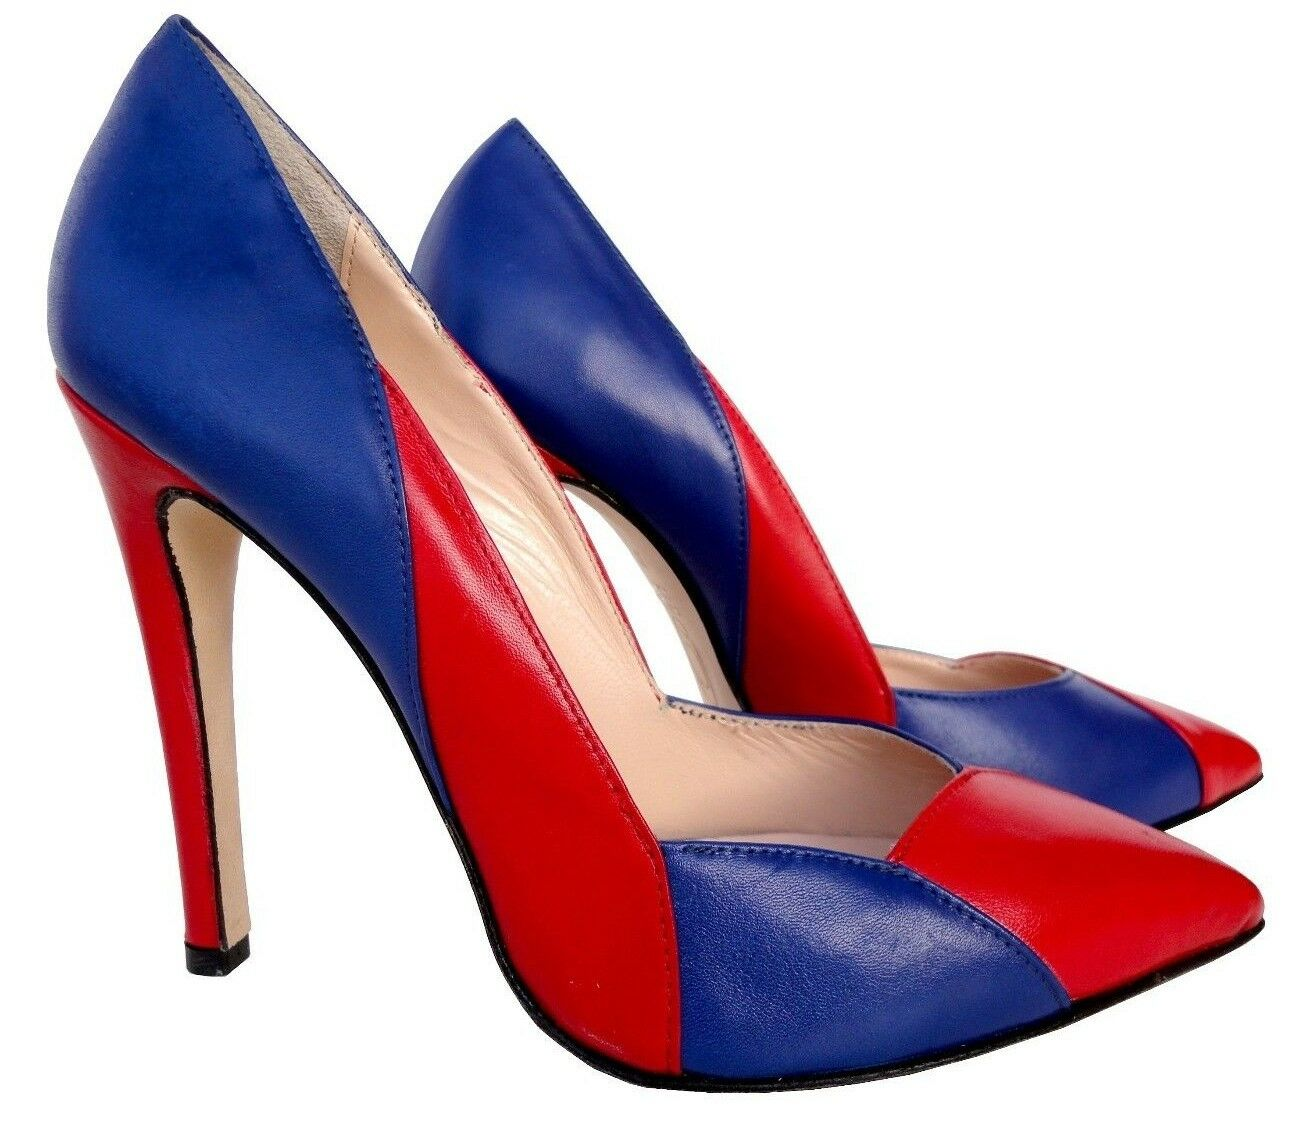 CQ COUTURE ITALY NEW HEELS POINTY PUMPS SCHUHE COURT SHOES LEATHER blueE RED 41